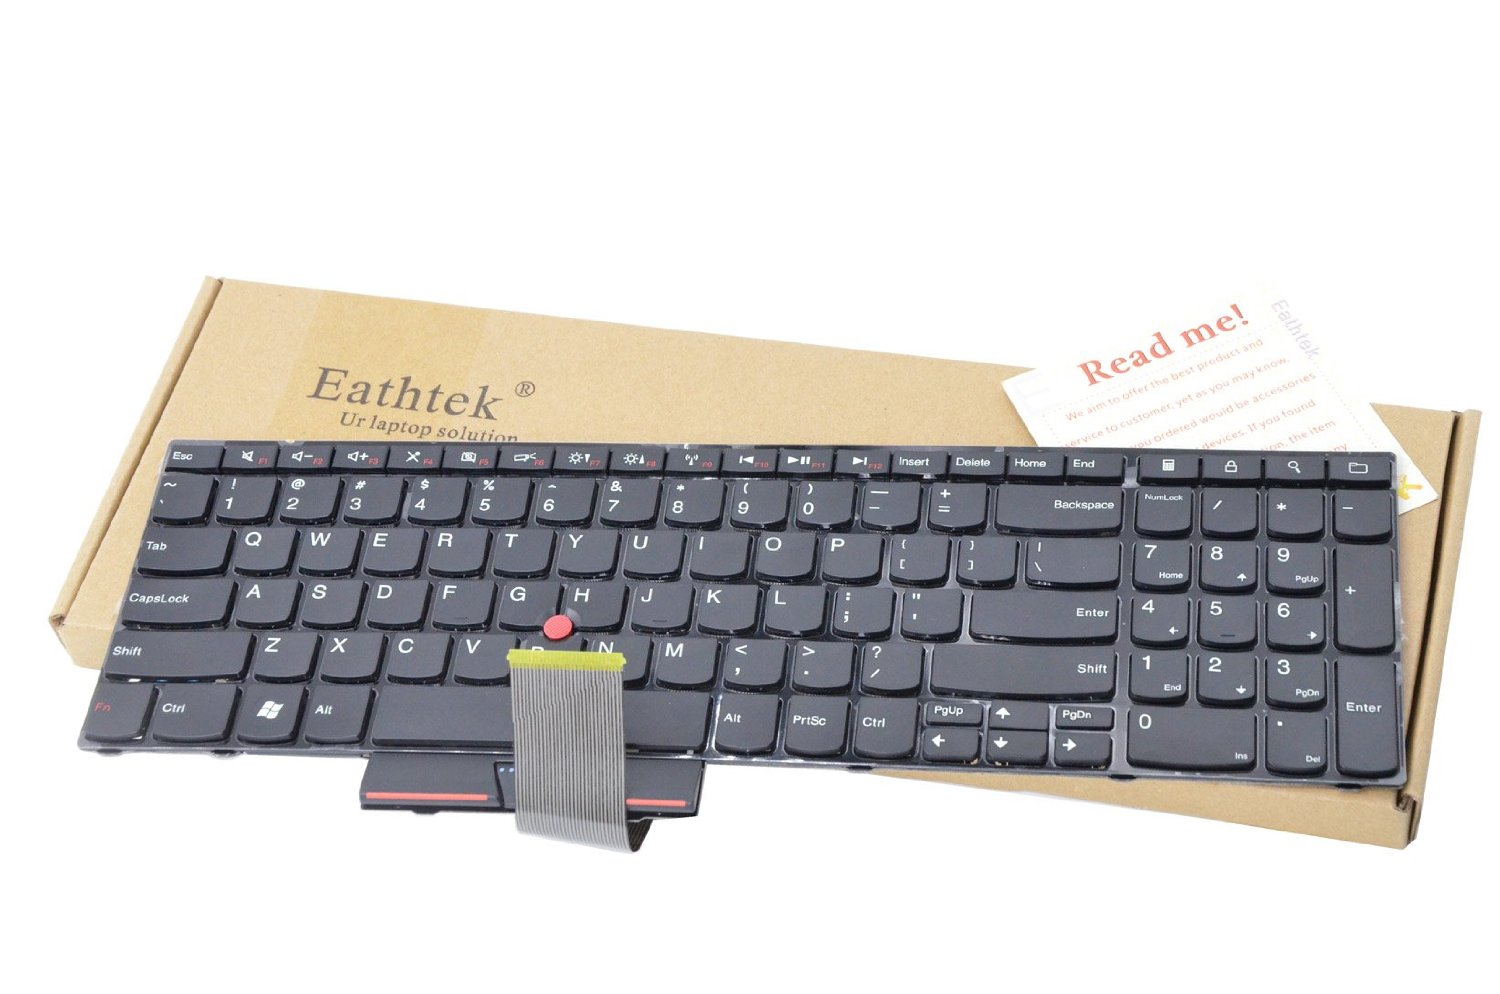 04W0872 04W0836 04W2236 0A62039 41SM0R 0A62075 New Laptop Keyboard with trackpoint for Lenovo IBM Thinkpad Edge E520 E520S E525 Series P//N US Layout Black Color